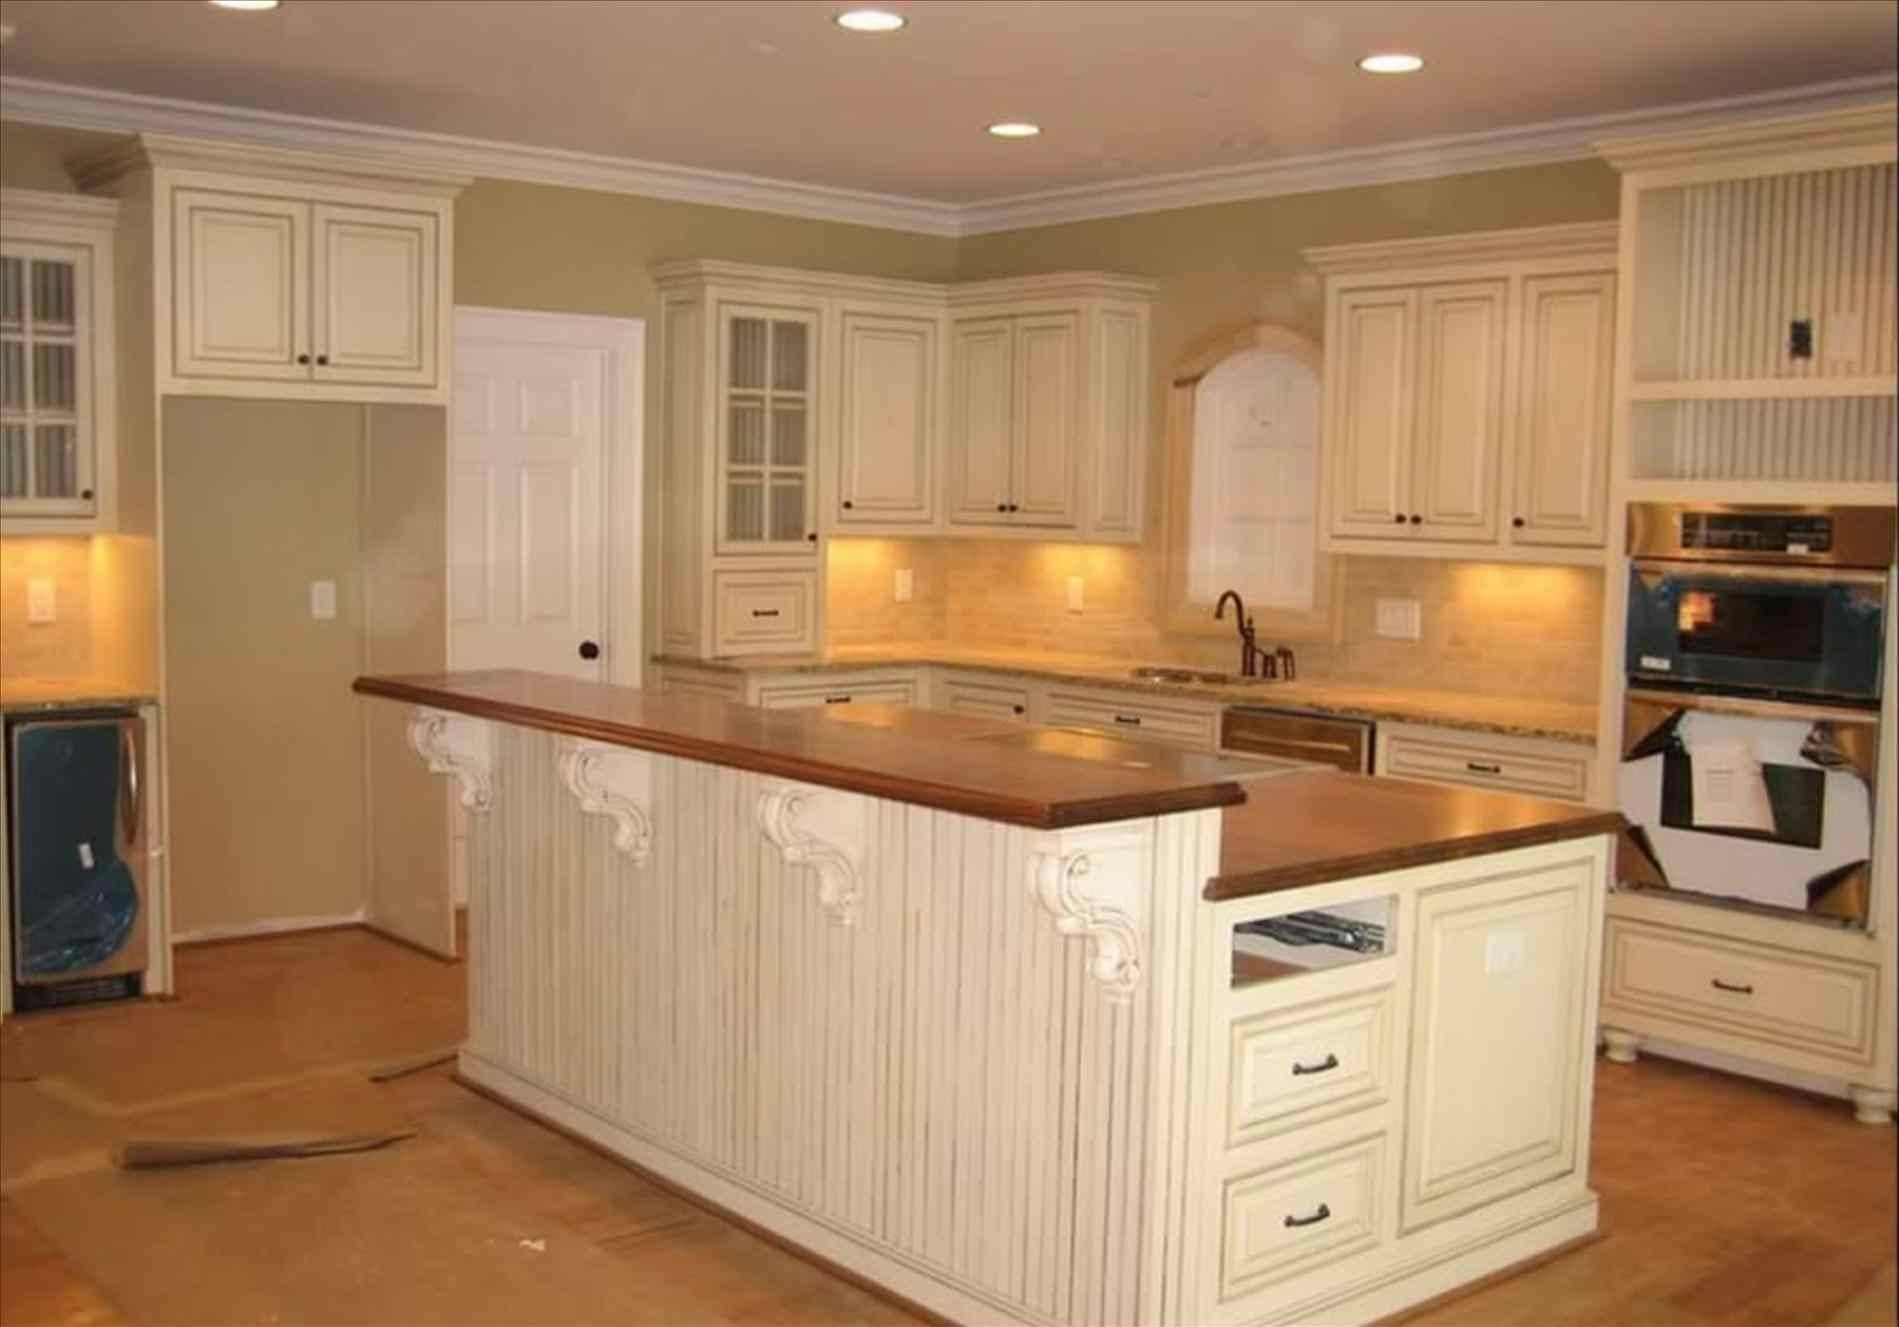 Fresh White Kitchen Cabinets With Brown Quartz Countertops The Awesome And Interesting White Kitch Distressed Kitchen Cabinets Kitchen Layout Kitchen Remodel